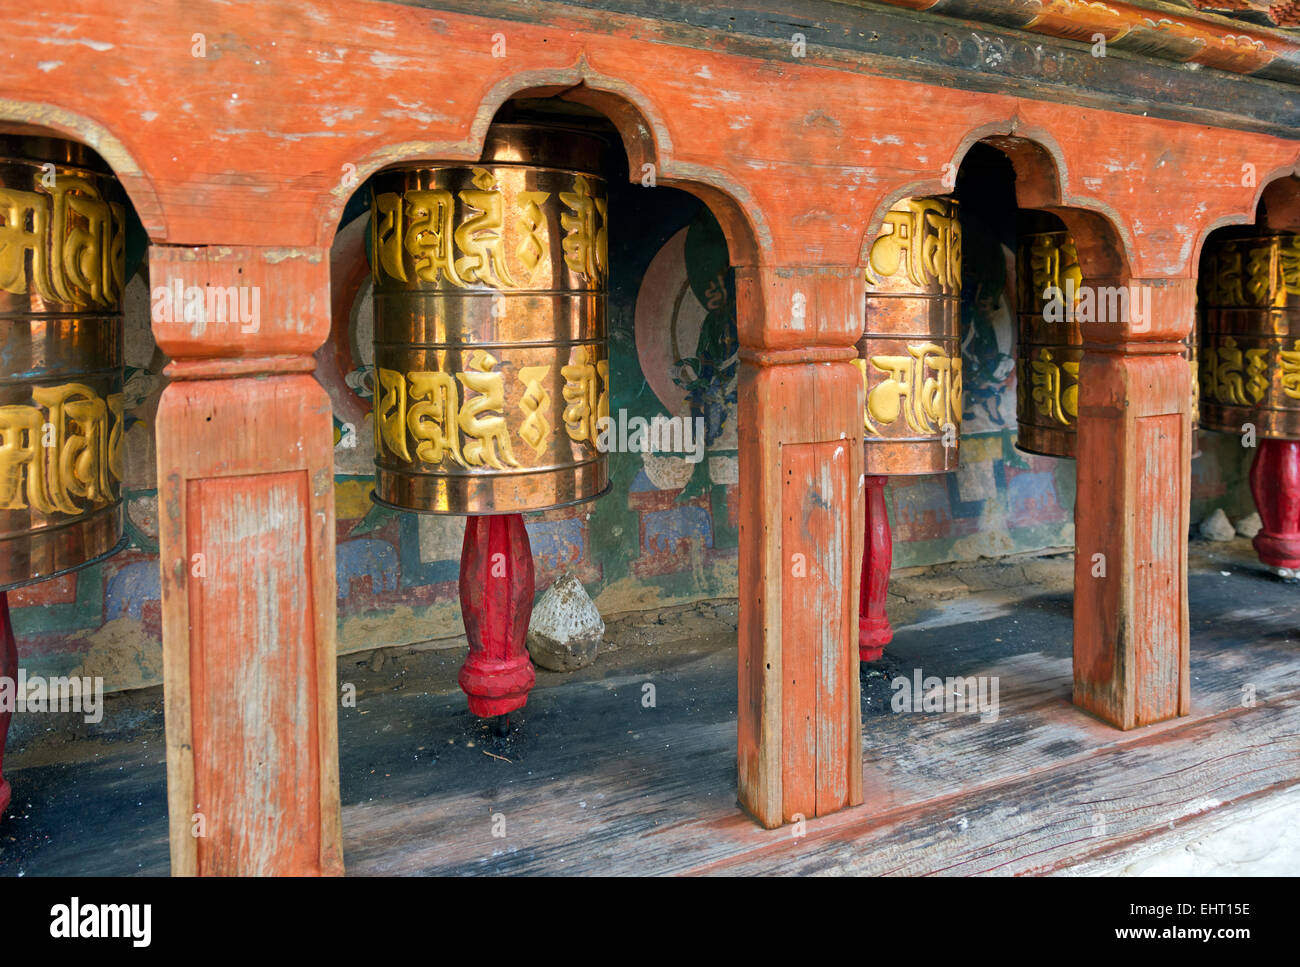 BU00367-00...BHUTAN - Prayer wheels at Kyichu Lhakhang near Paro, one of the oldest Temples in Bhutan. - Stock Image